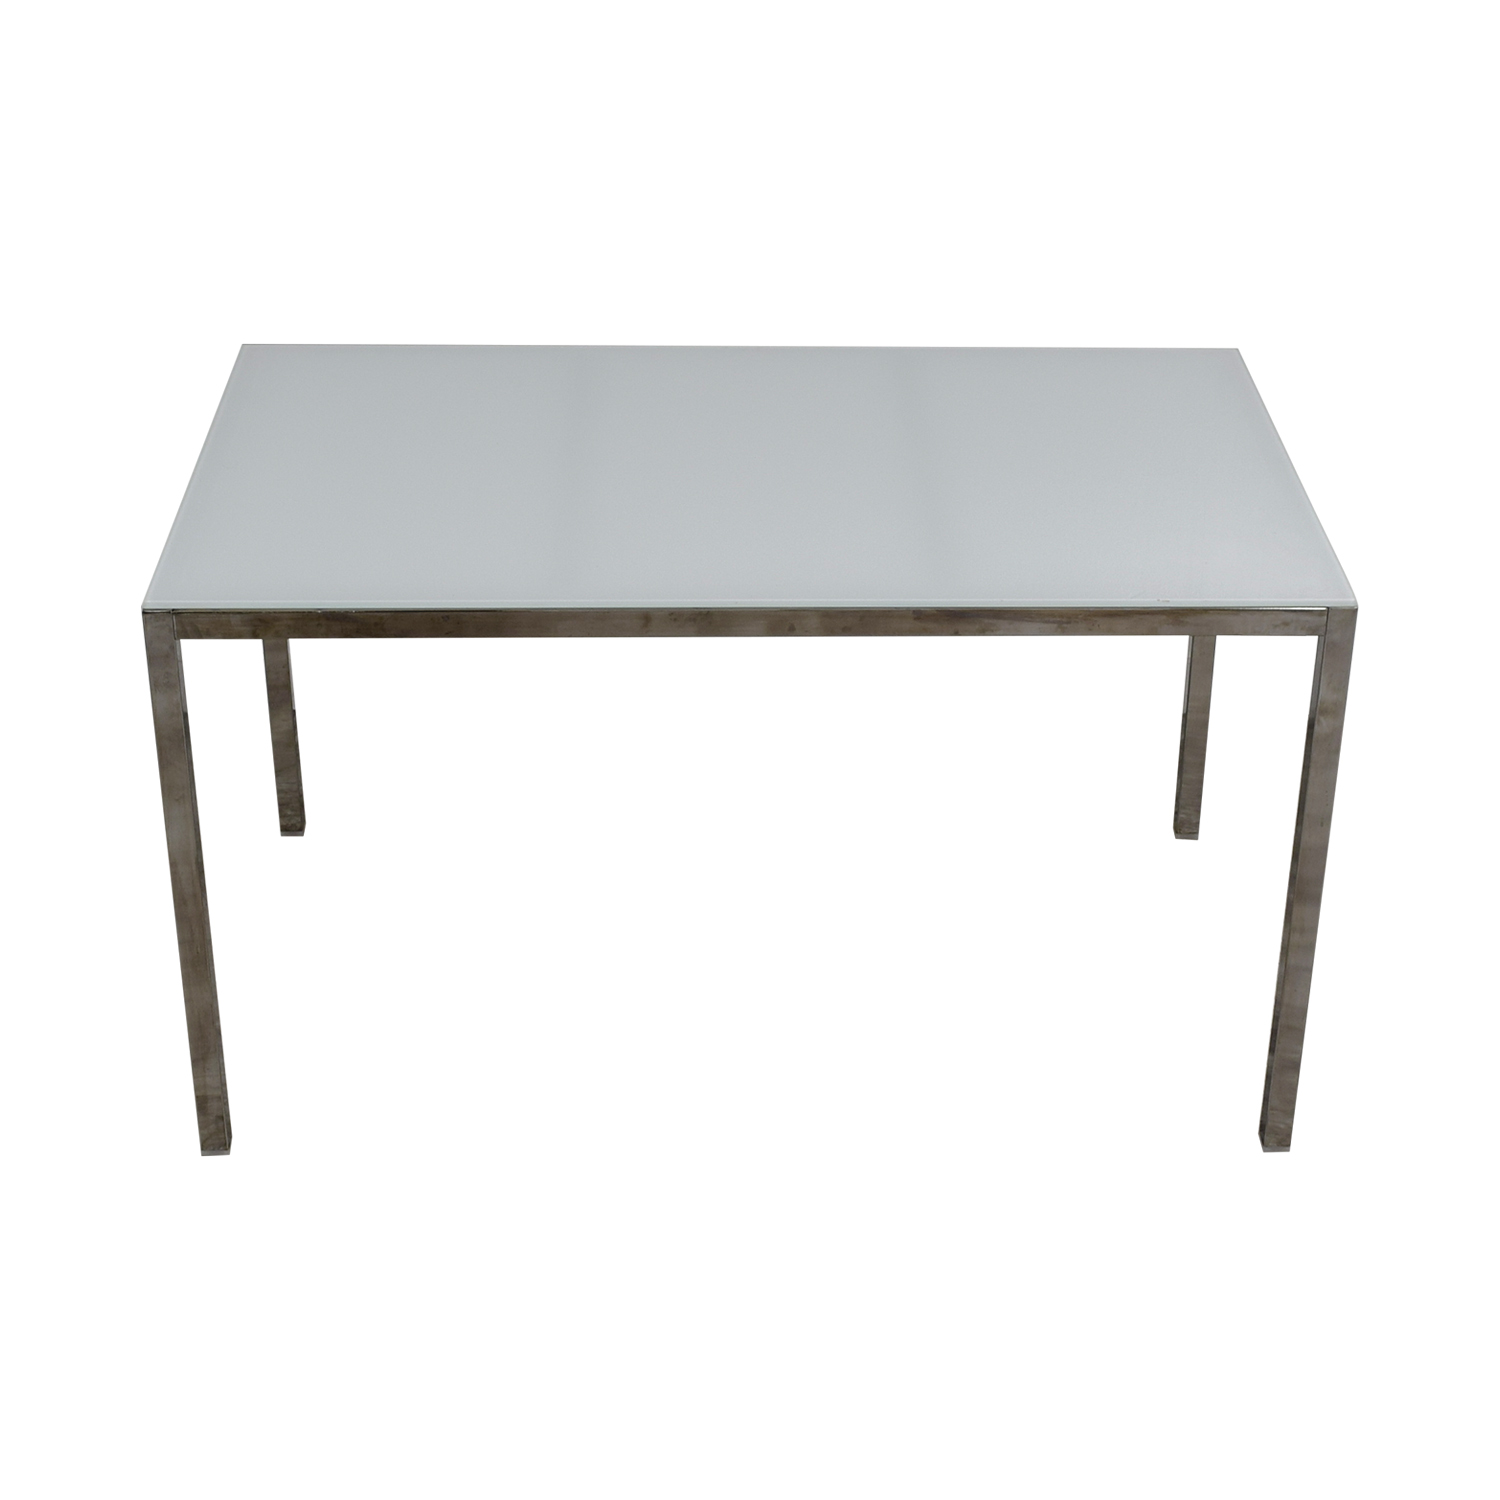 IKEA IKEA White Glass Top Dining Table nyc